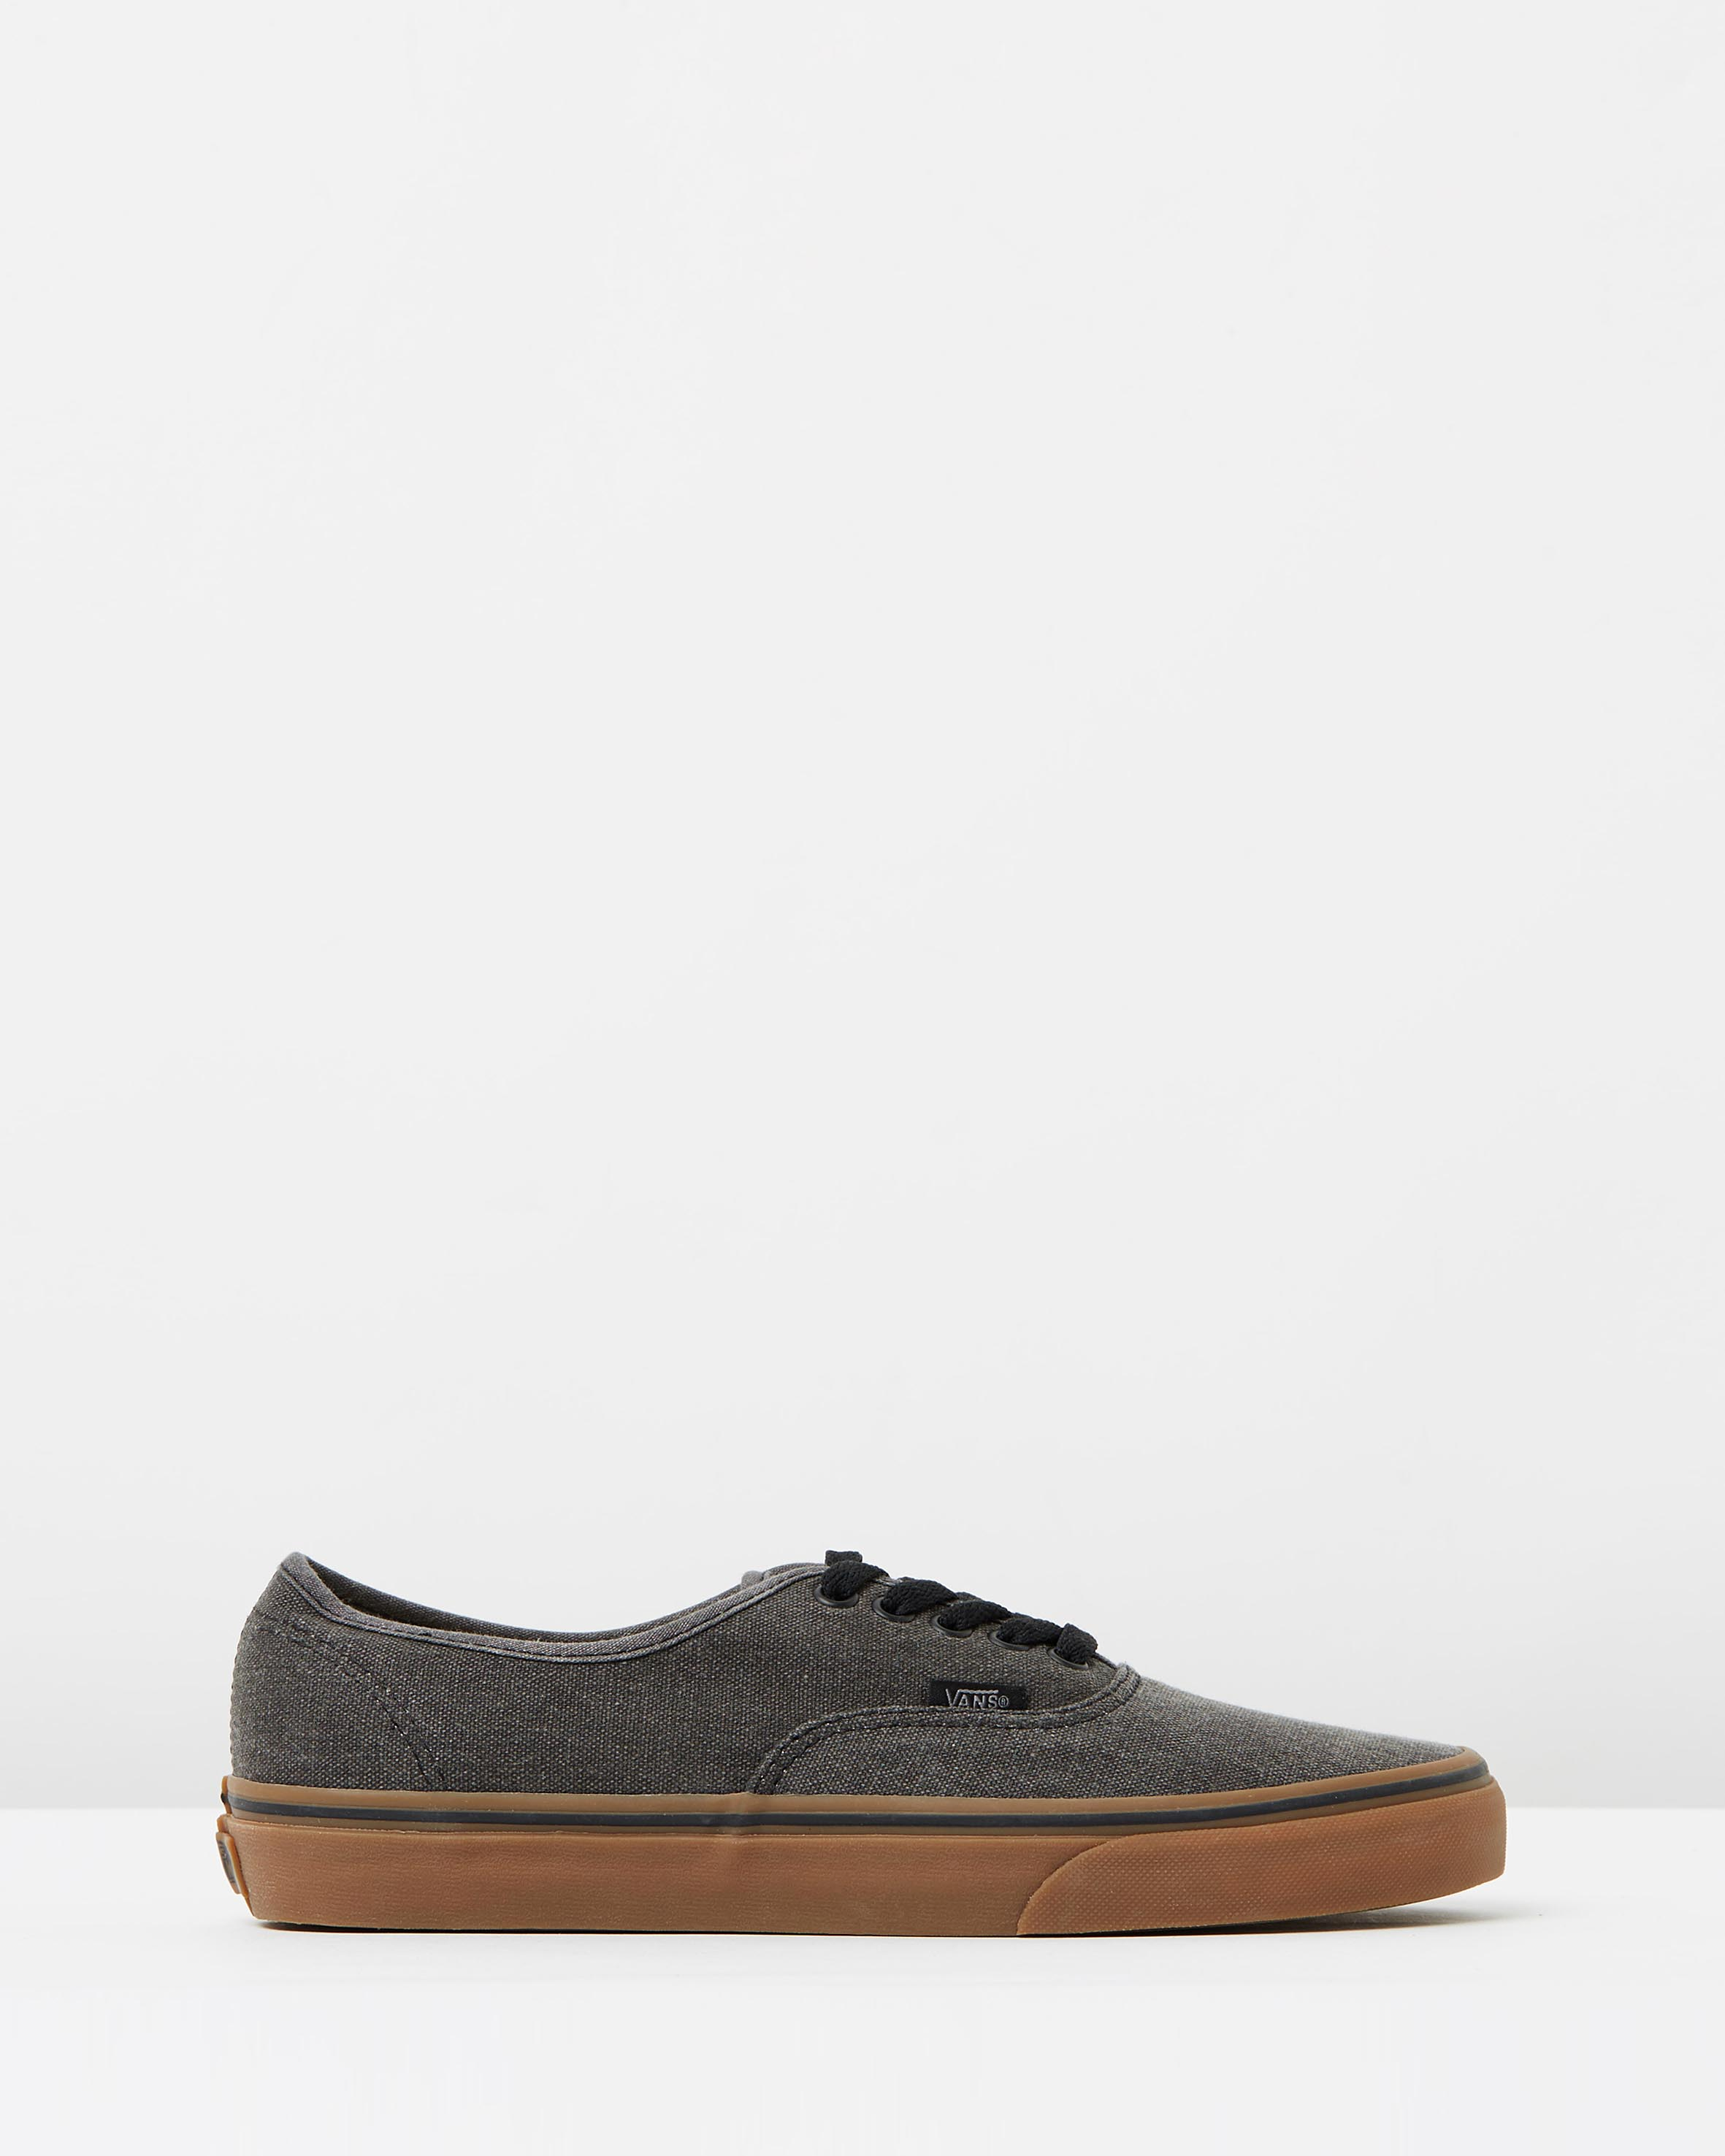 authentic vans herren